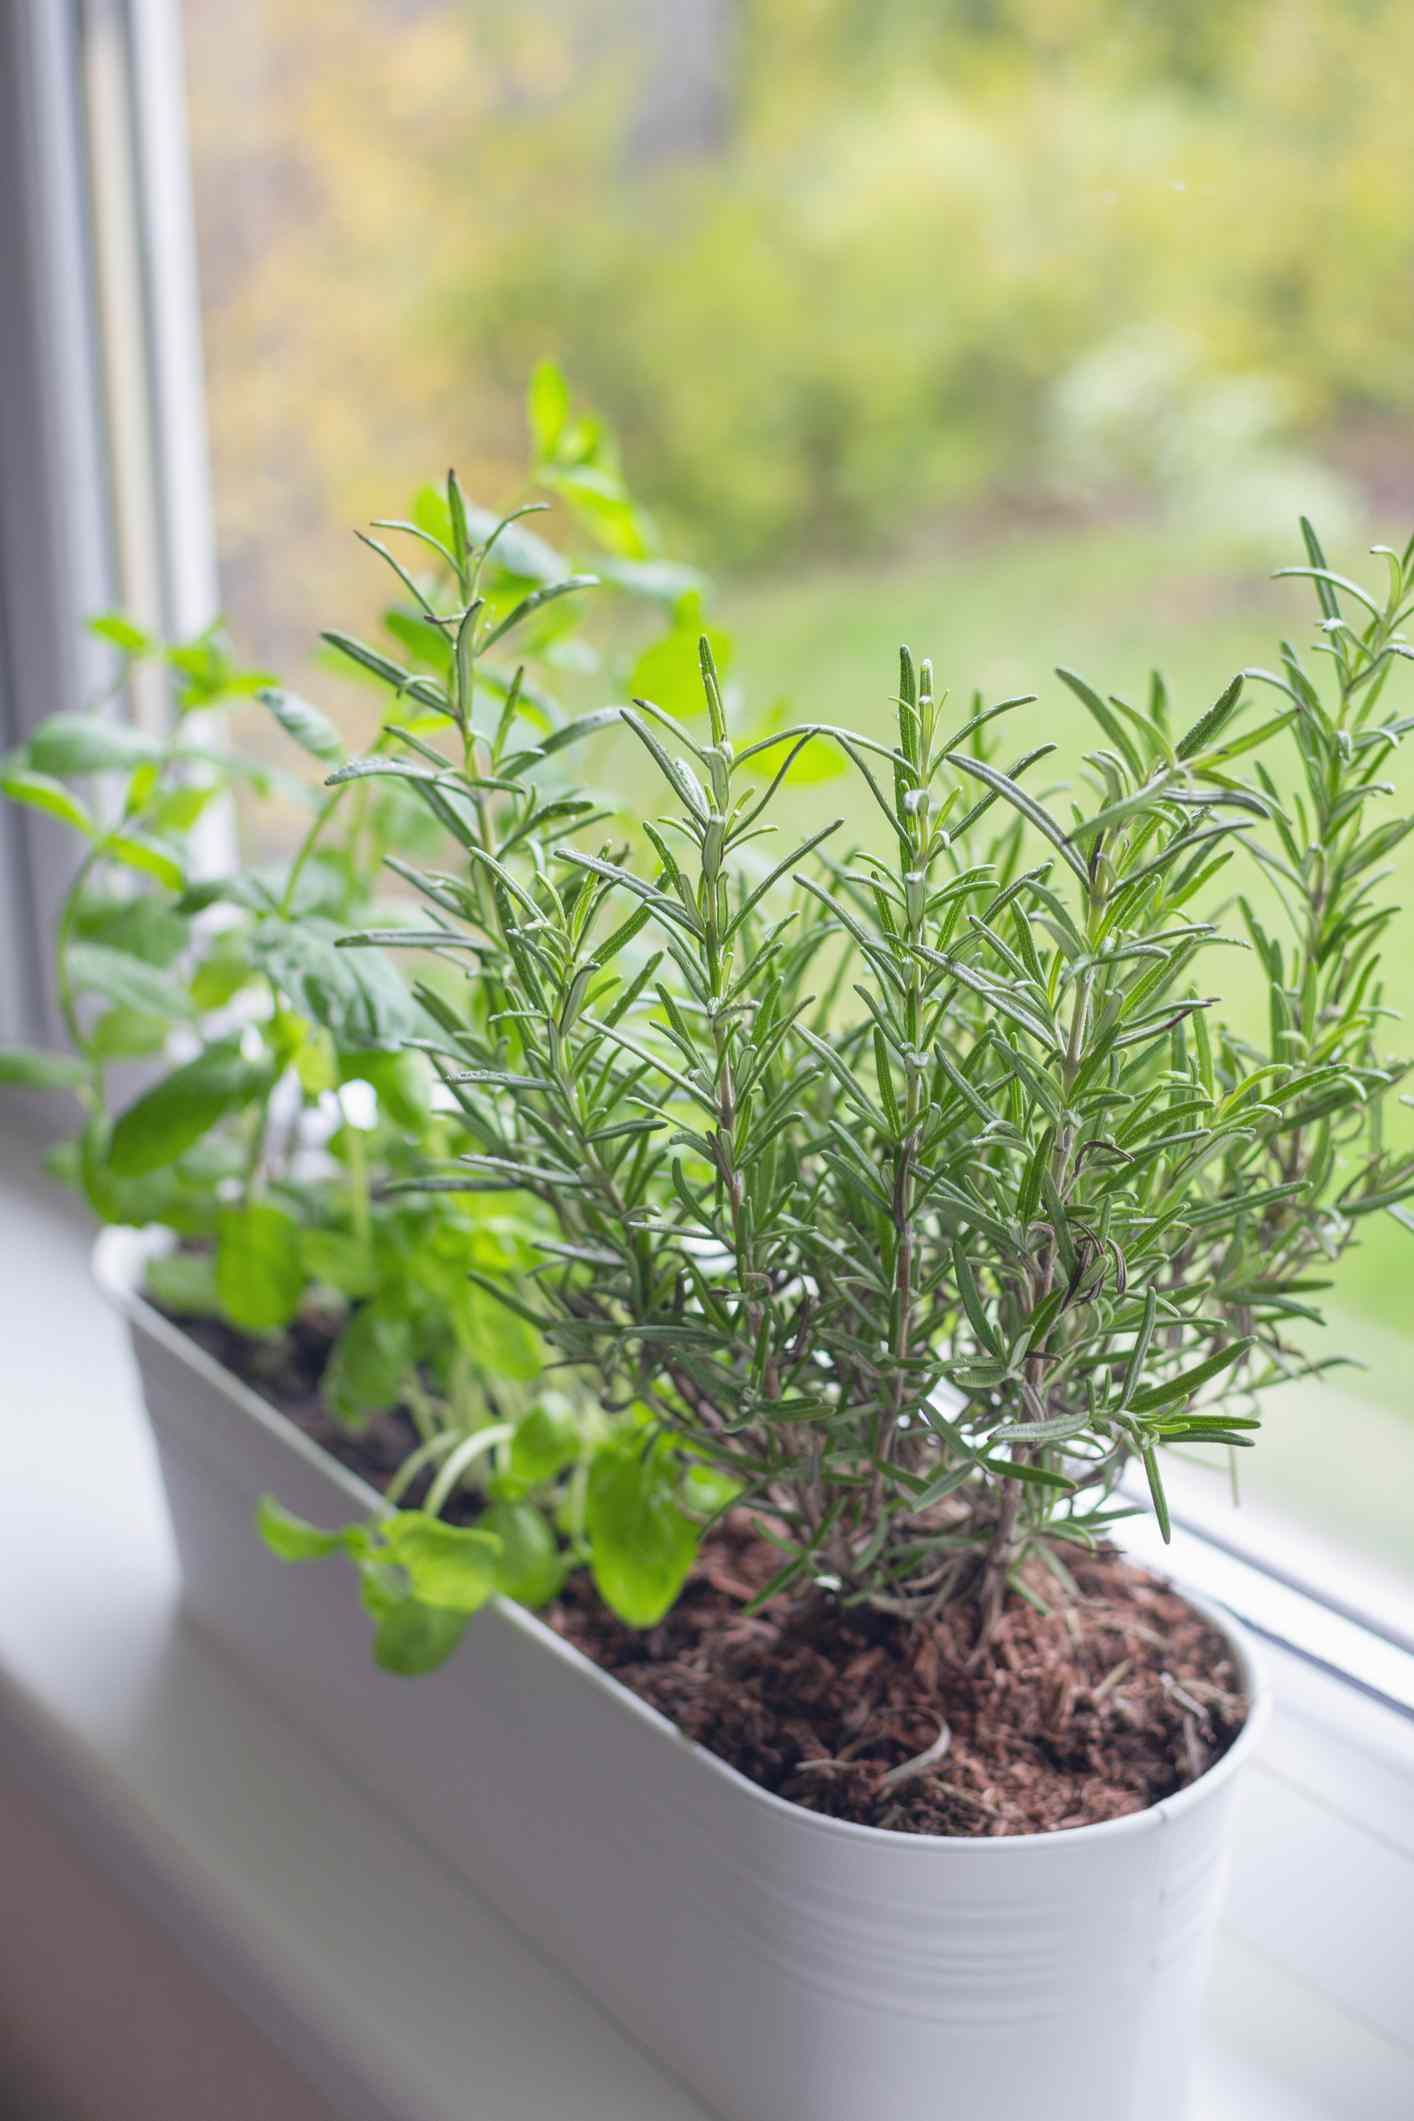 Fresh basil, mint and rosemary are growing in a large white flower pot on windowsill indoors.